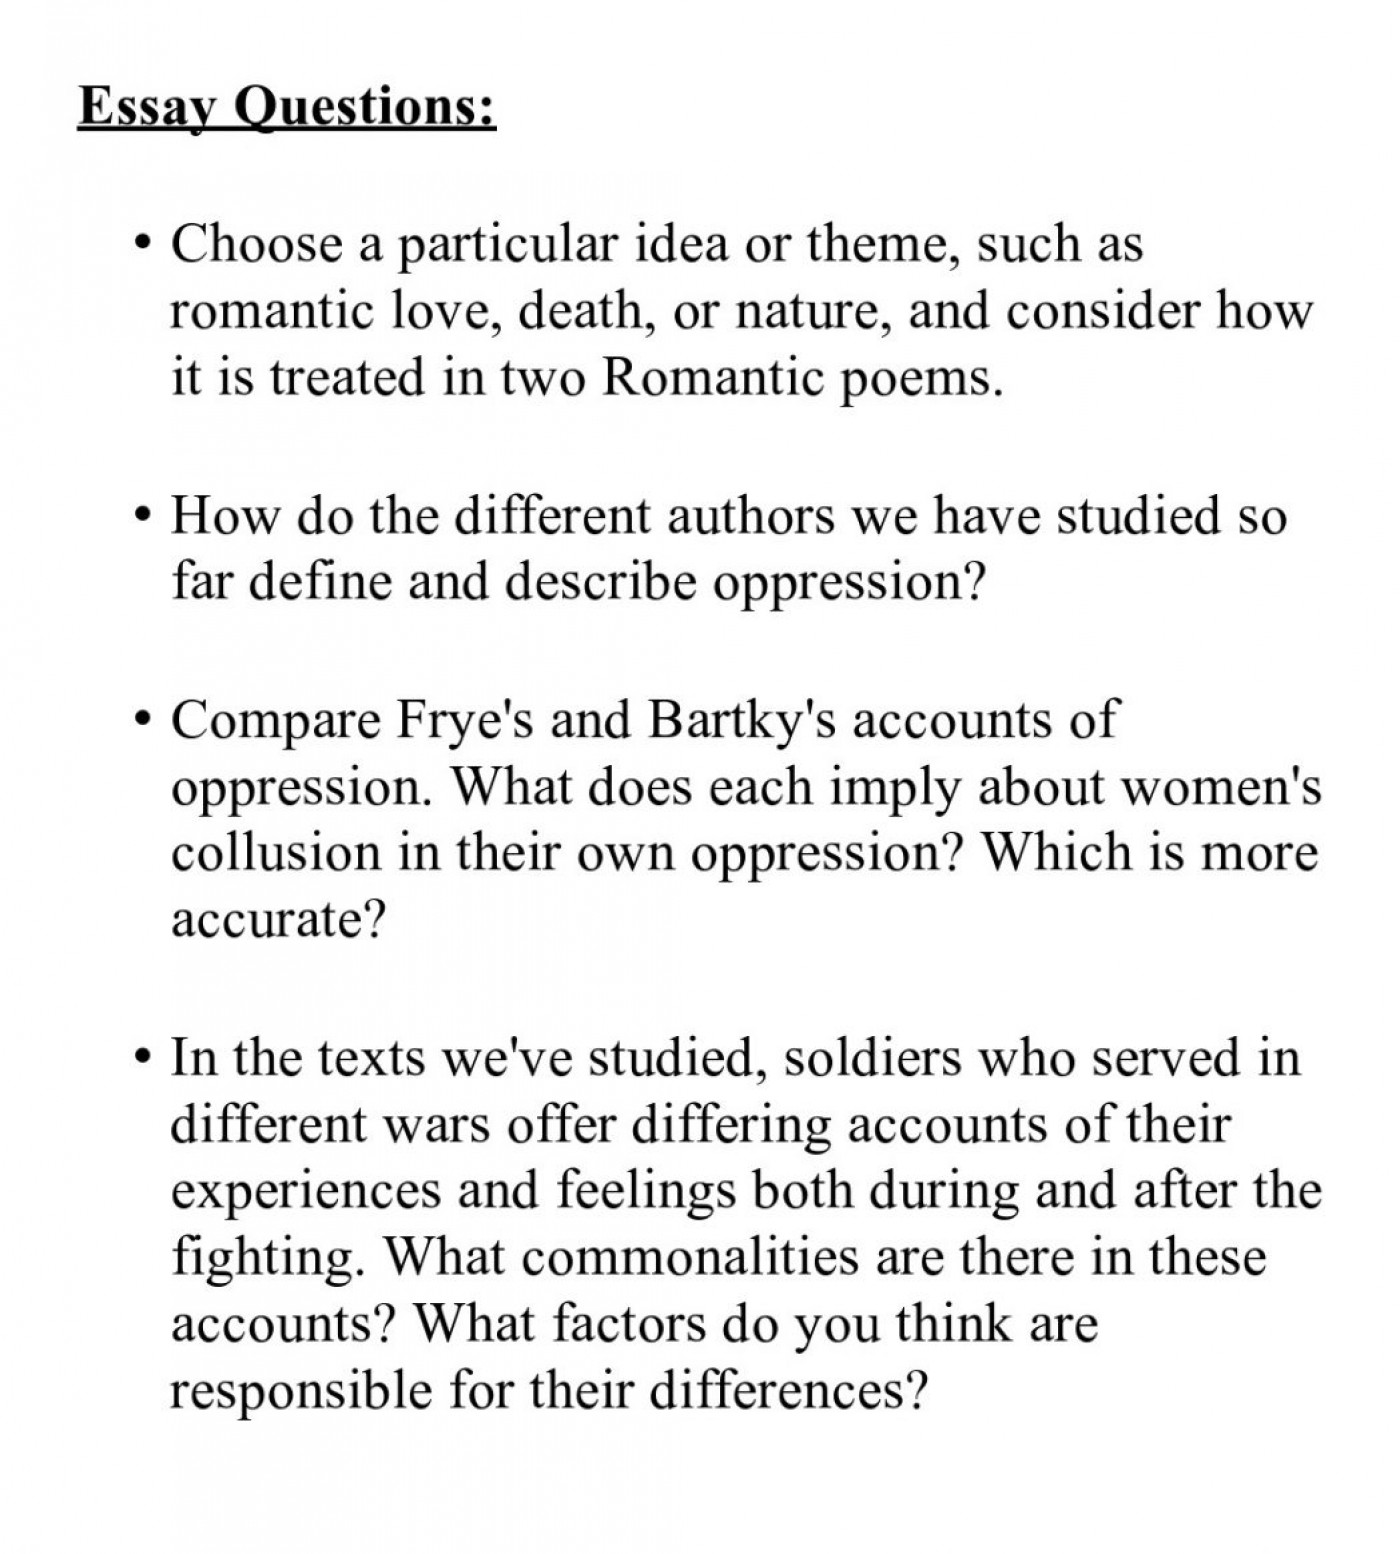 012 Nyu Essay Question Questions For Essays Cover Letter ...